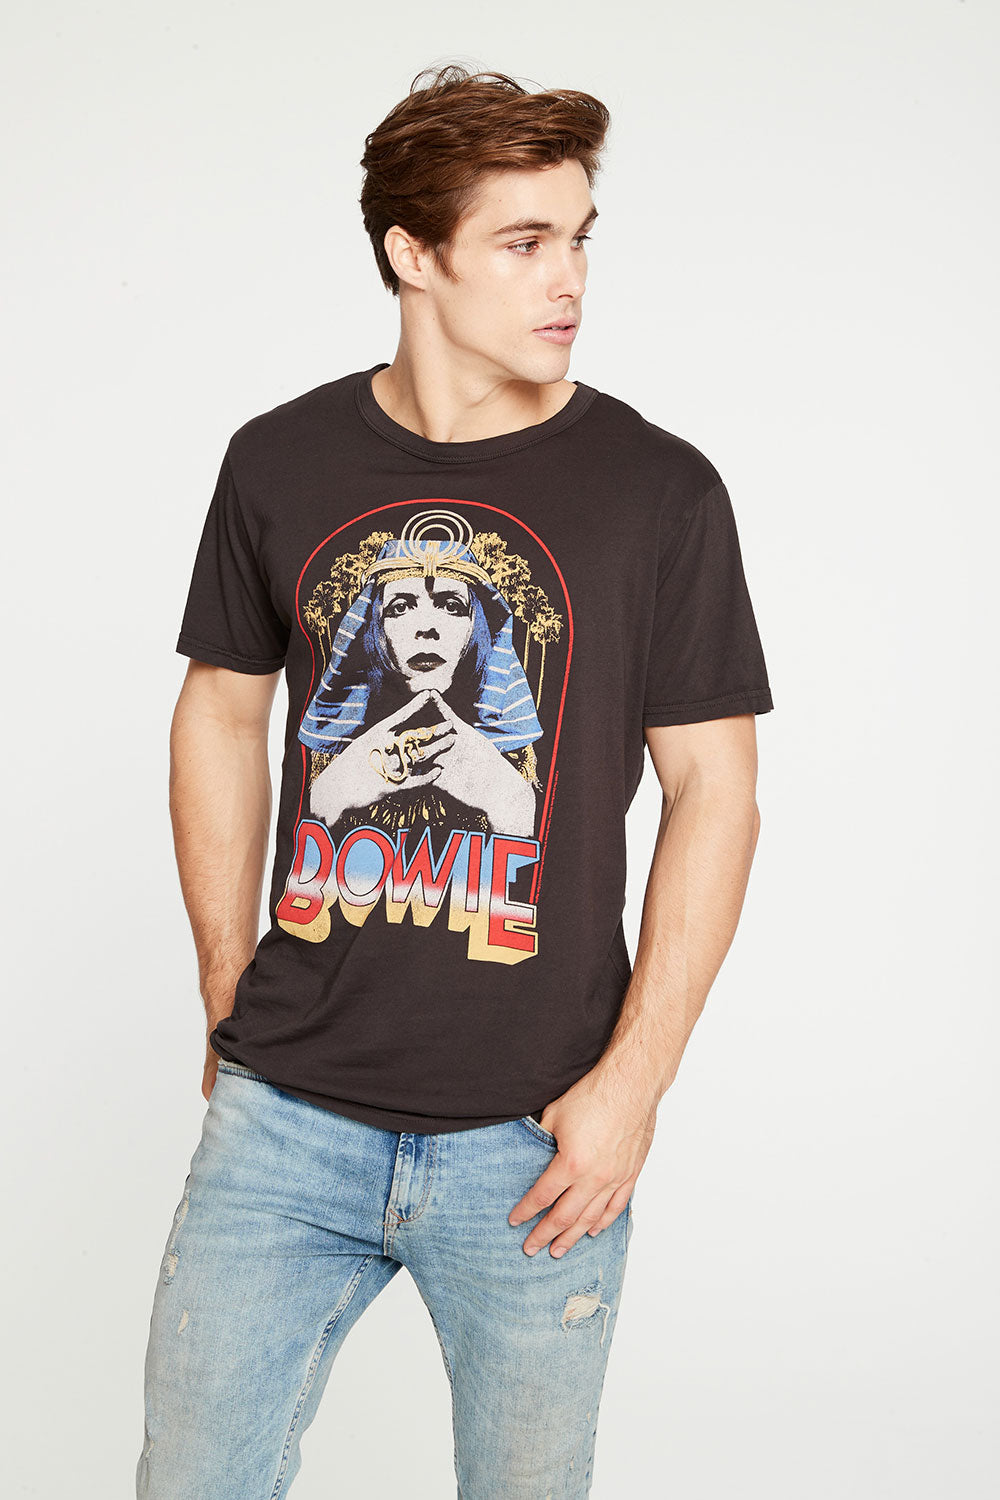 David Bowie - Sphinx MENS chaserbrand4.myshopify.com